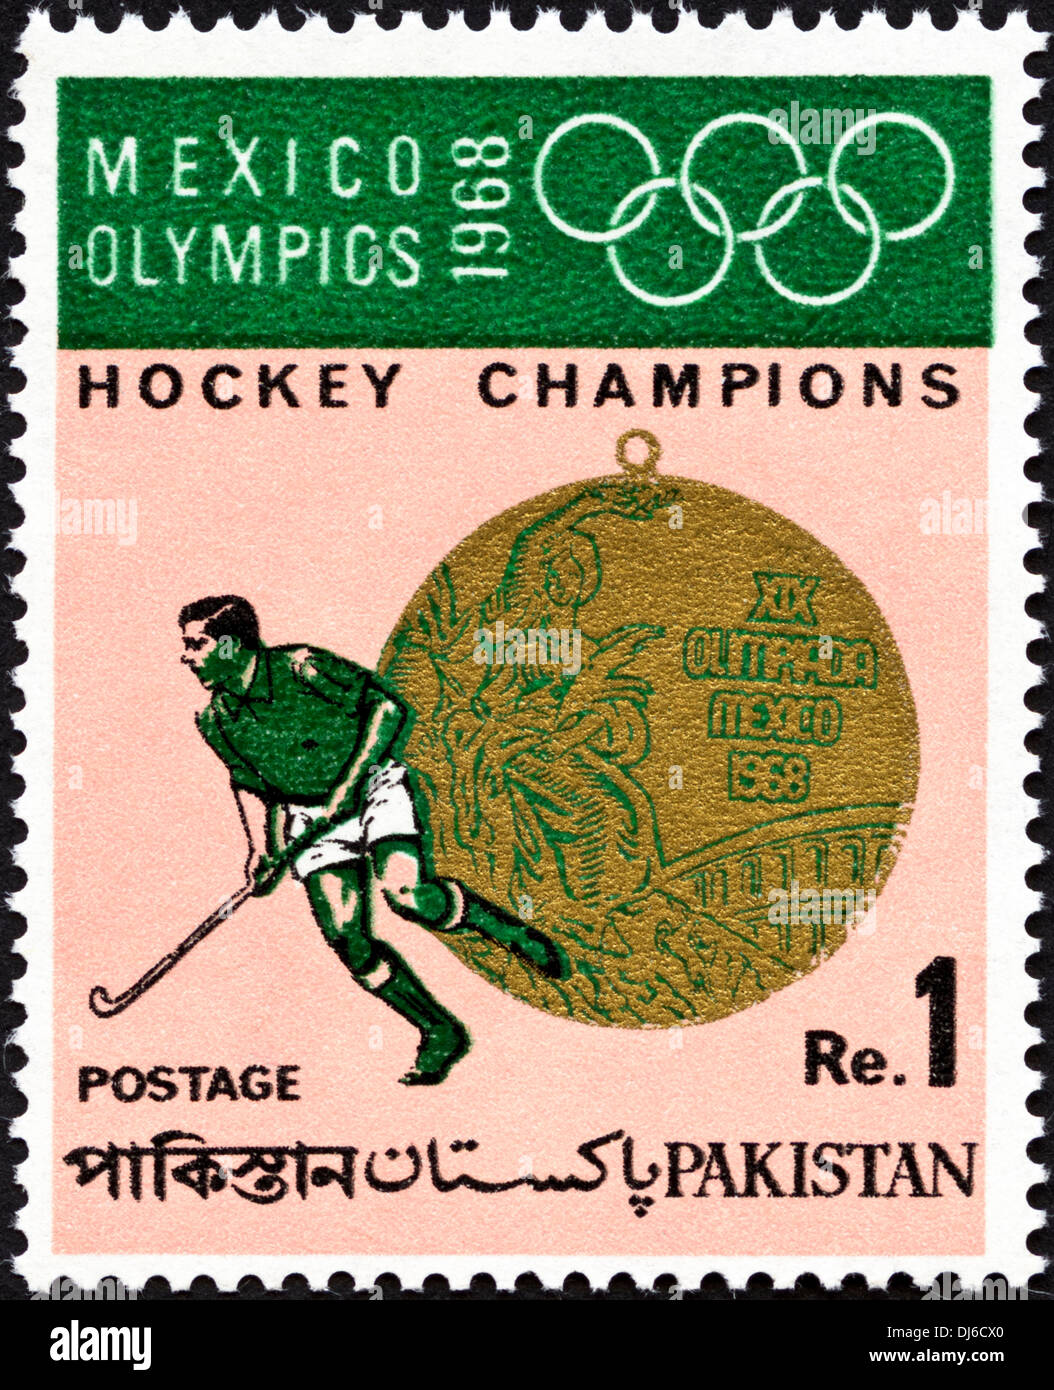 postage stamp Pakistan 1 Rupee featuring Mexico Olympics 1968 Hockey Champions issued 1969 - Stock Image